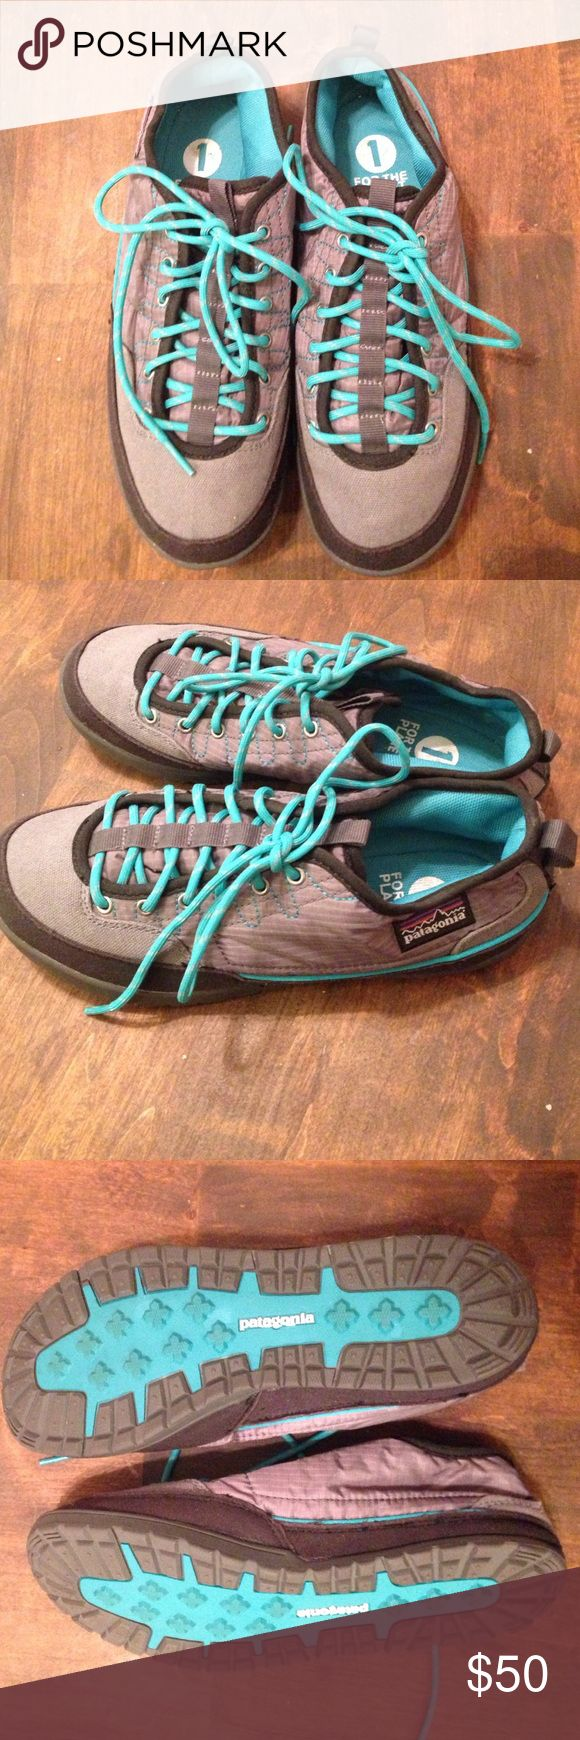 💥SALE💥Patagonia Shoes Nicole Patagonia Performance Footwear. This shoes are in great condition! Barely worn. Size 9, but fits a snug. I would compare it more to an 8.5. Ships from a pet and smoke free home. Patagonia Shoes Sneakers